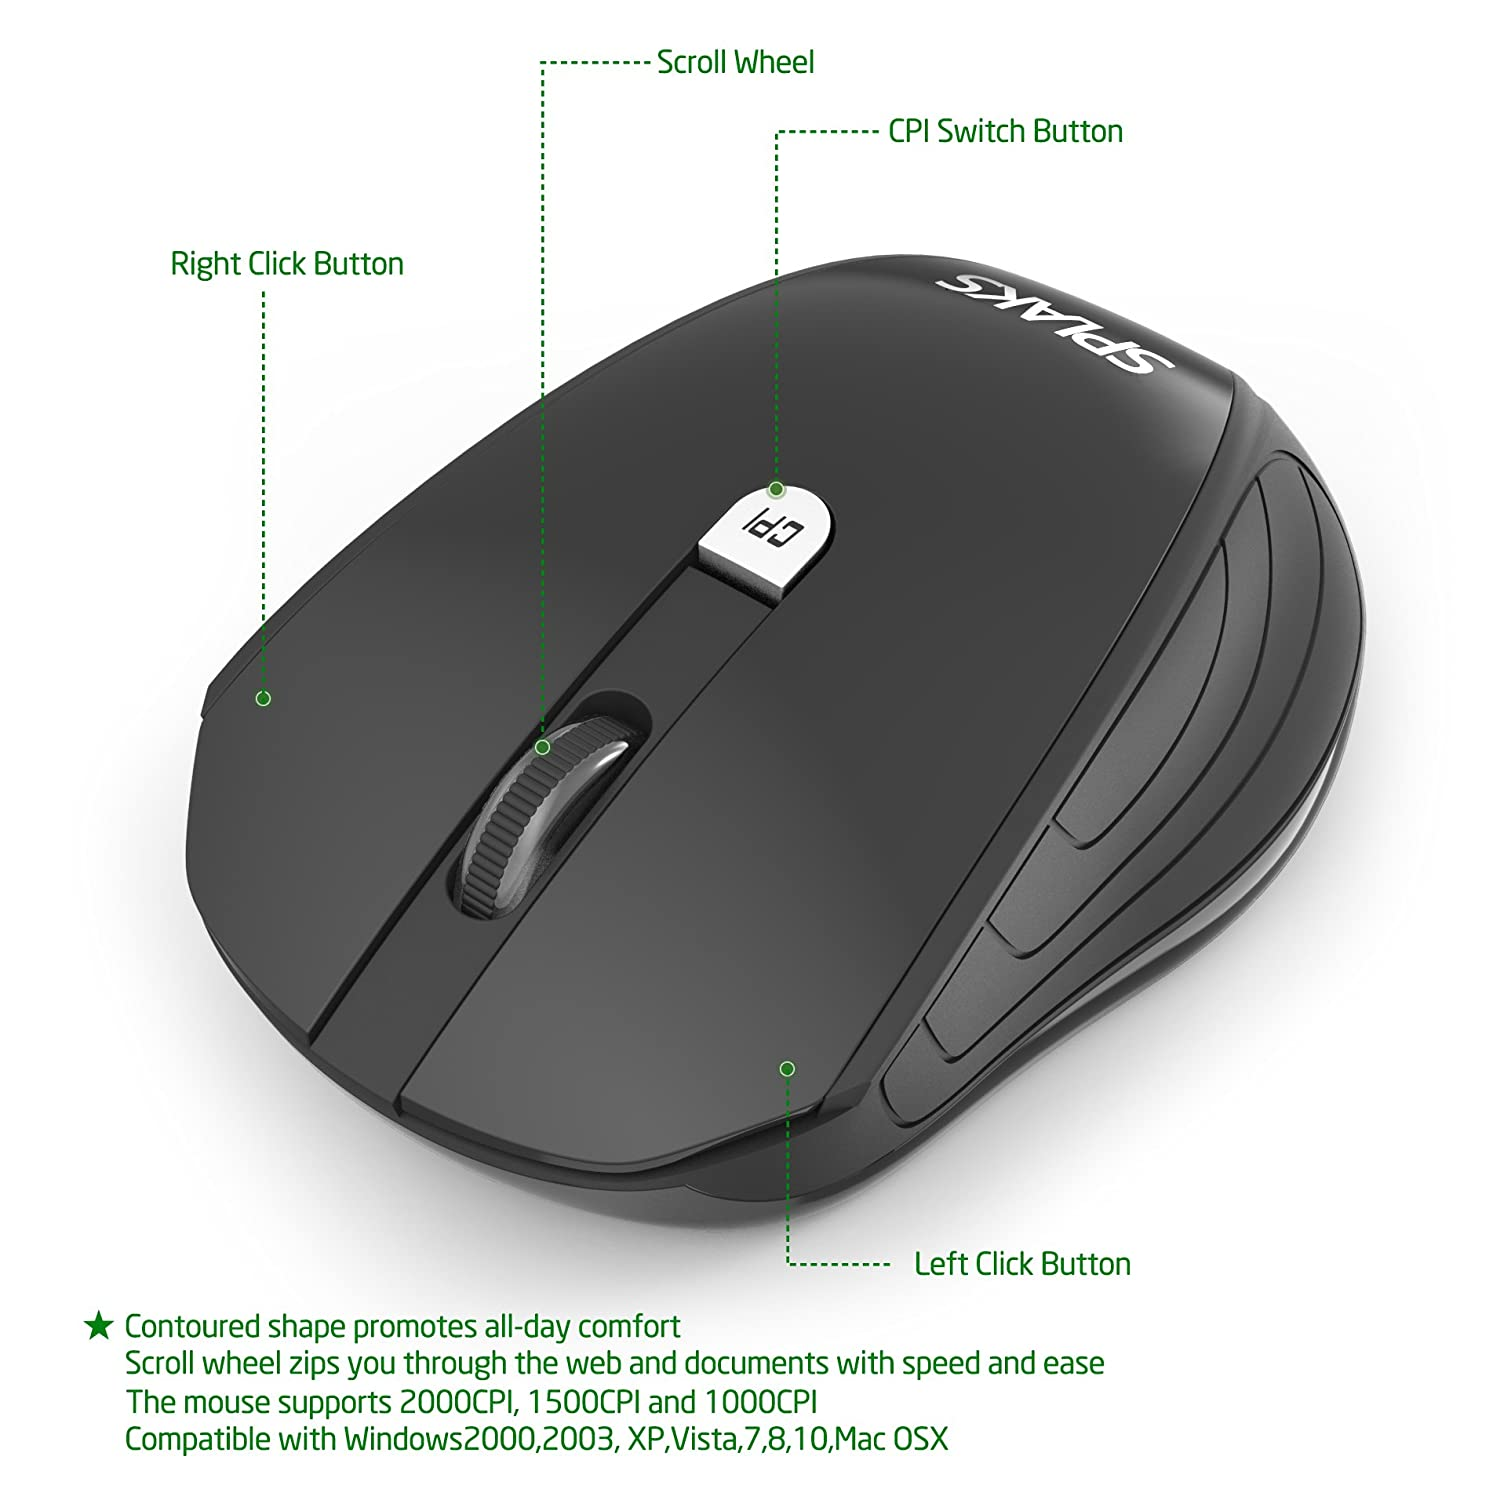 ENGAGE B319 WIRELESS MOUSE WINDOWS 7 X64 DRIVER